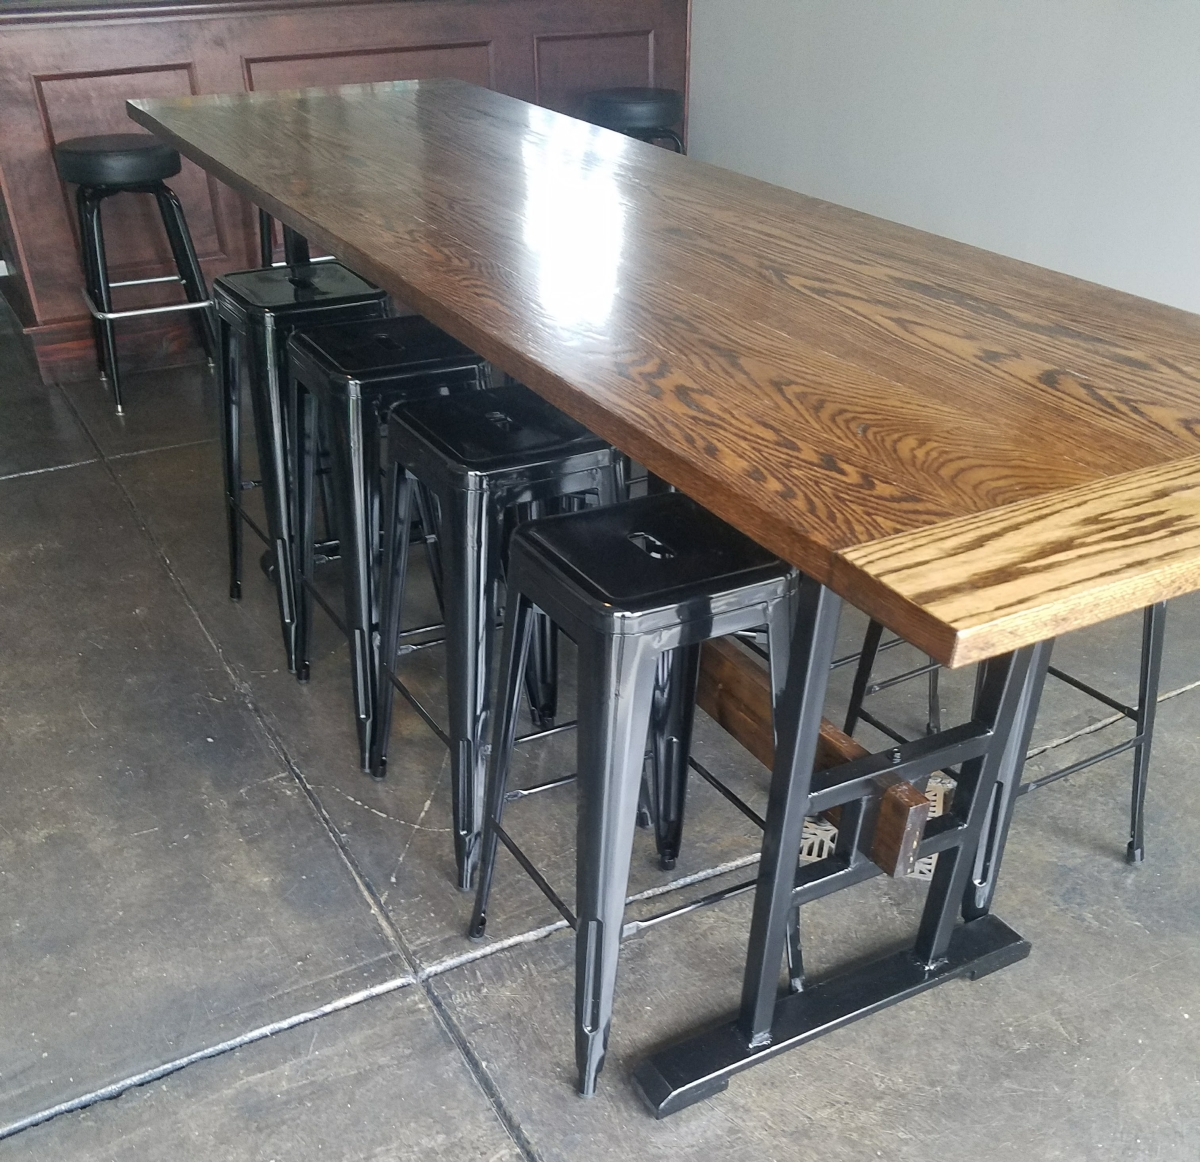 Building an Industrial (sized) Bar Table